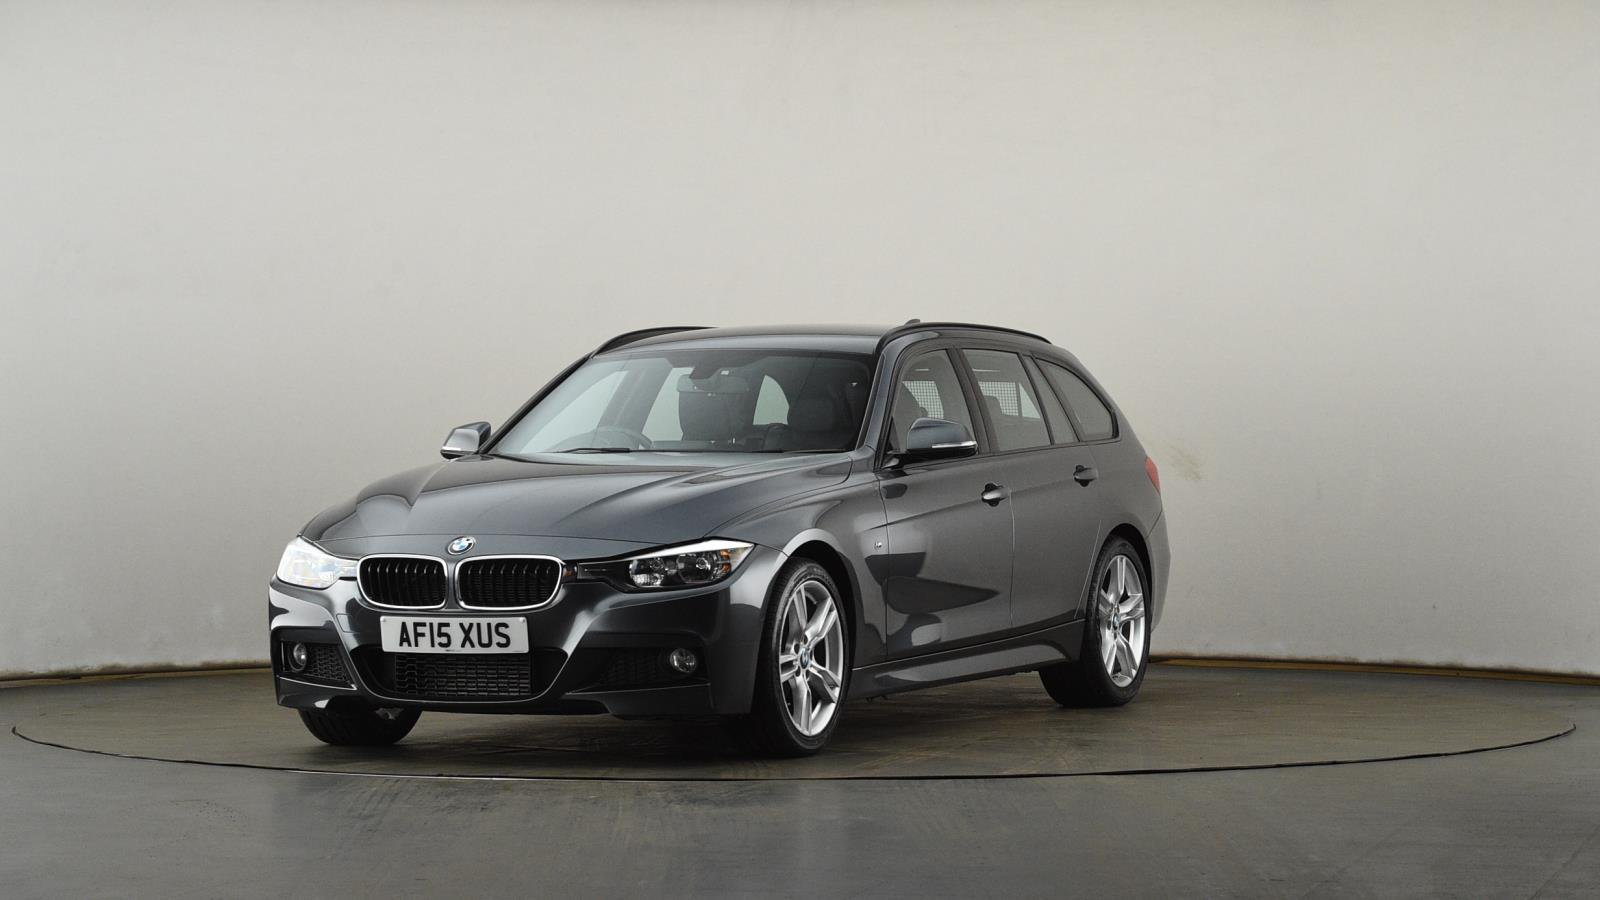 Used BMW 3 SERIES 320d M Sport 5dr Step Auto [Business Media] | Grey